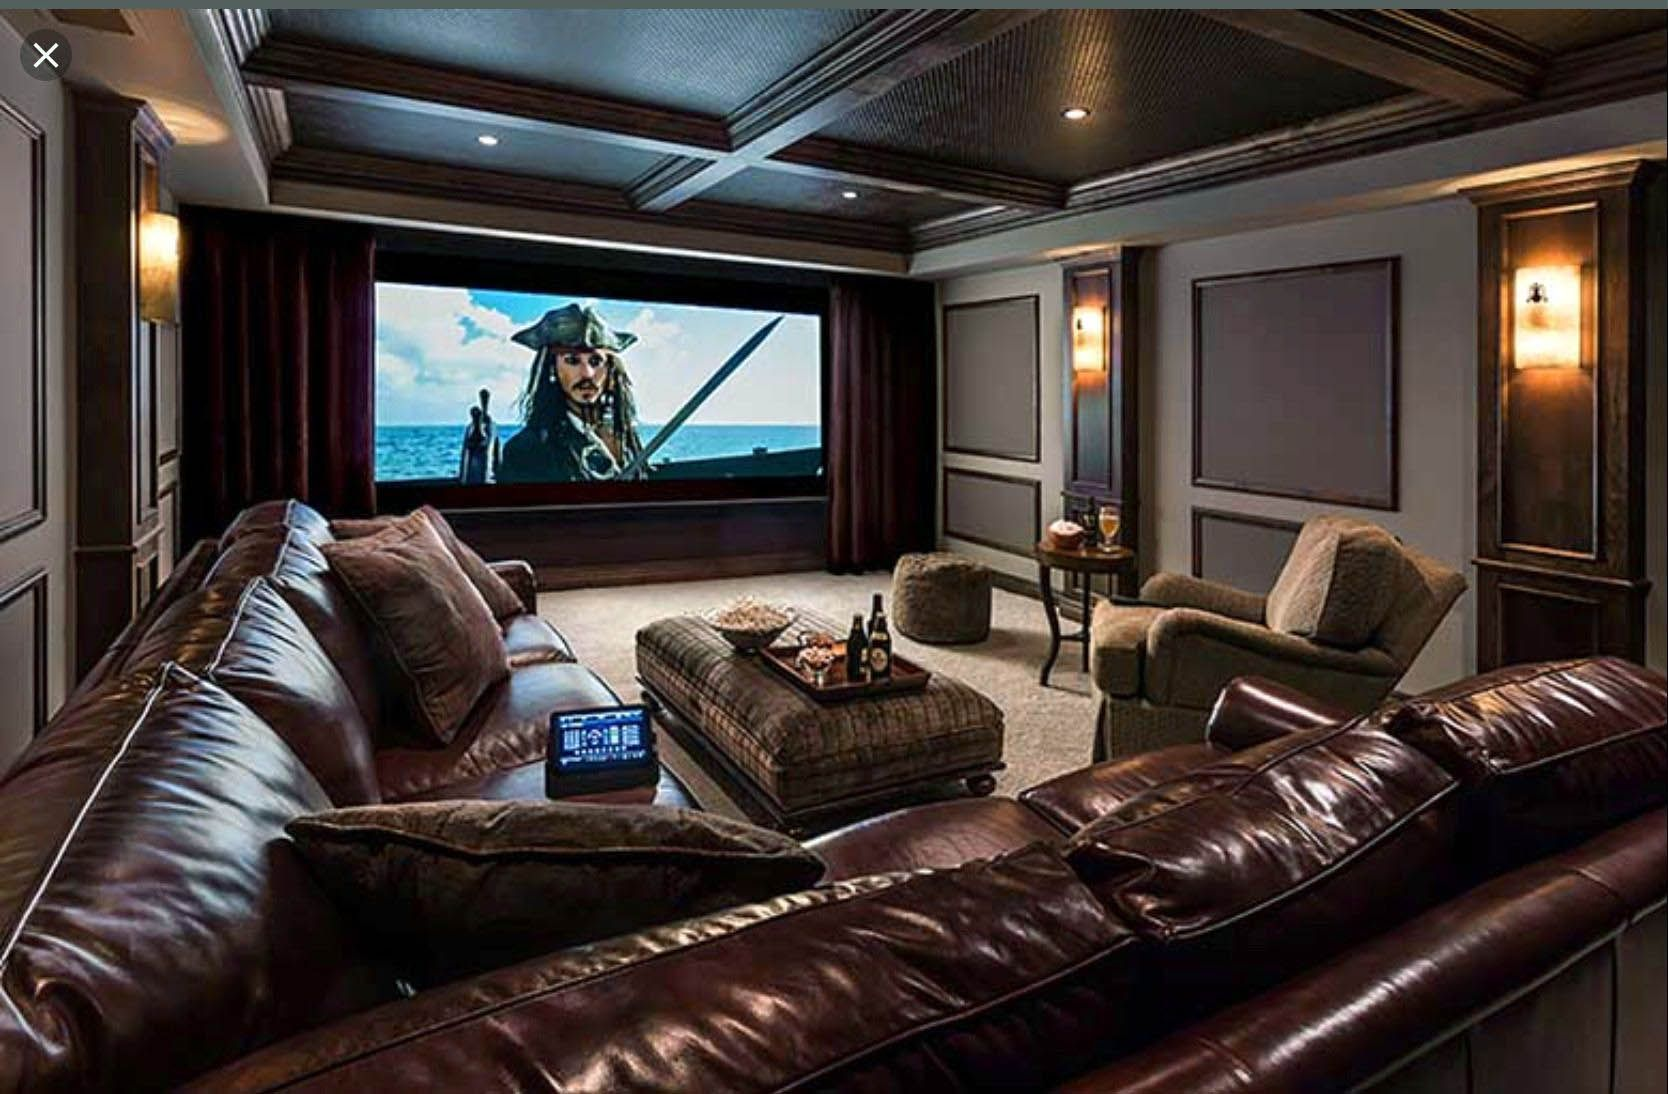 New Home Movie Theater Birthday Party Ideas Exclusive On Planet